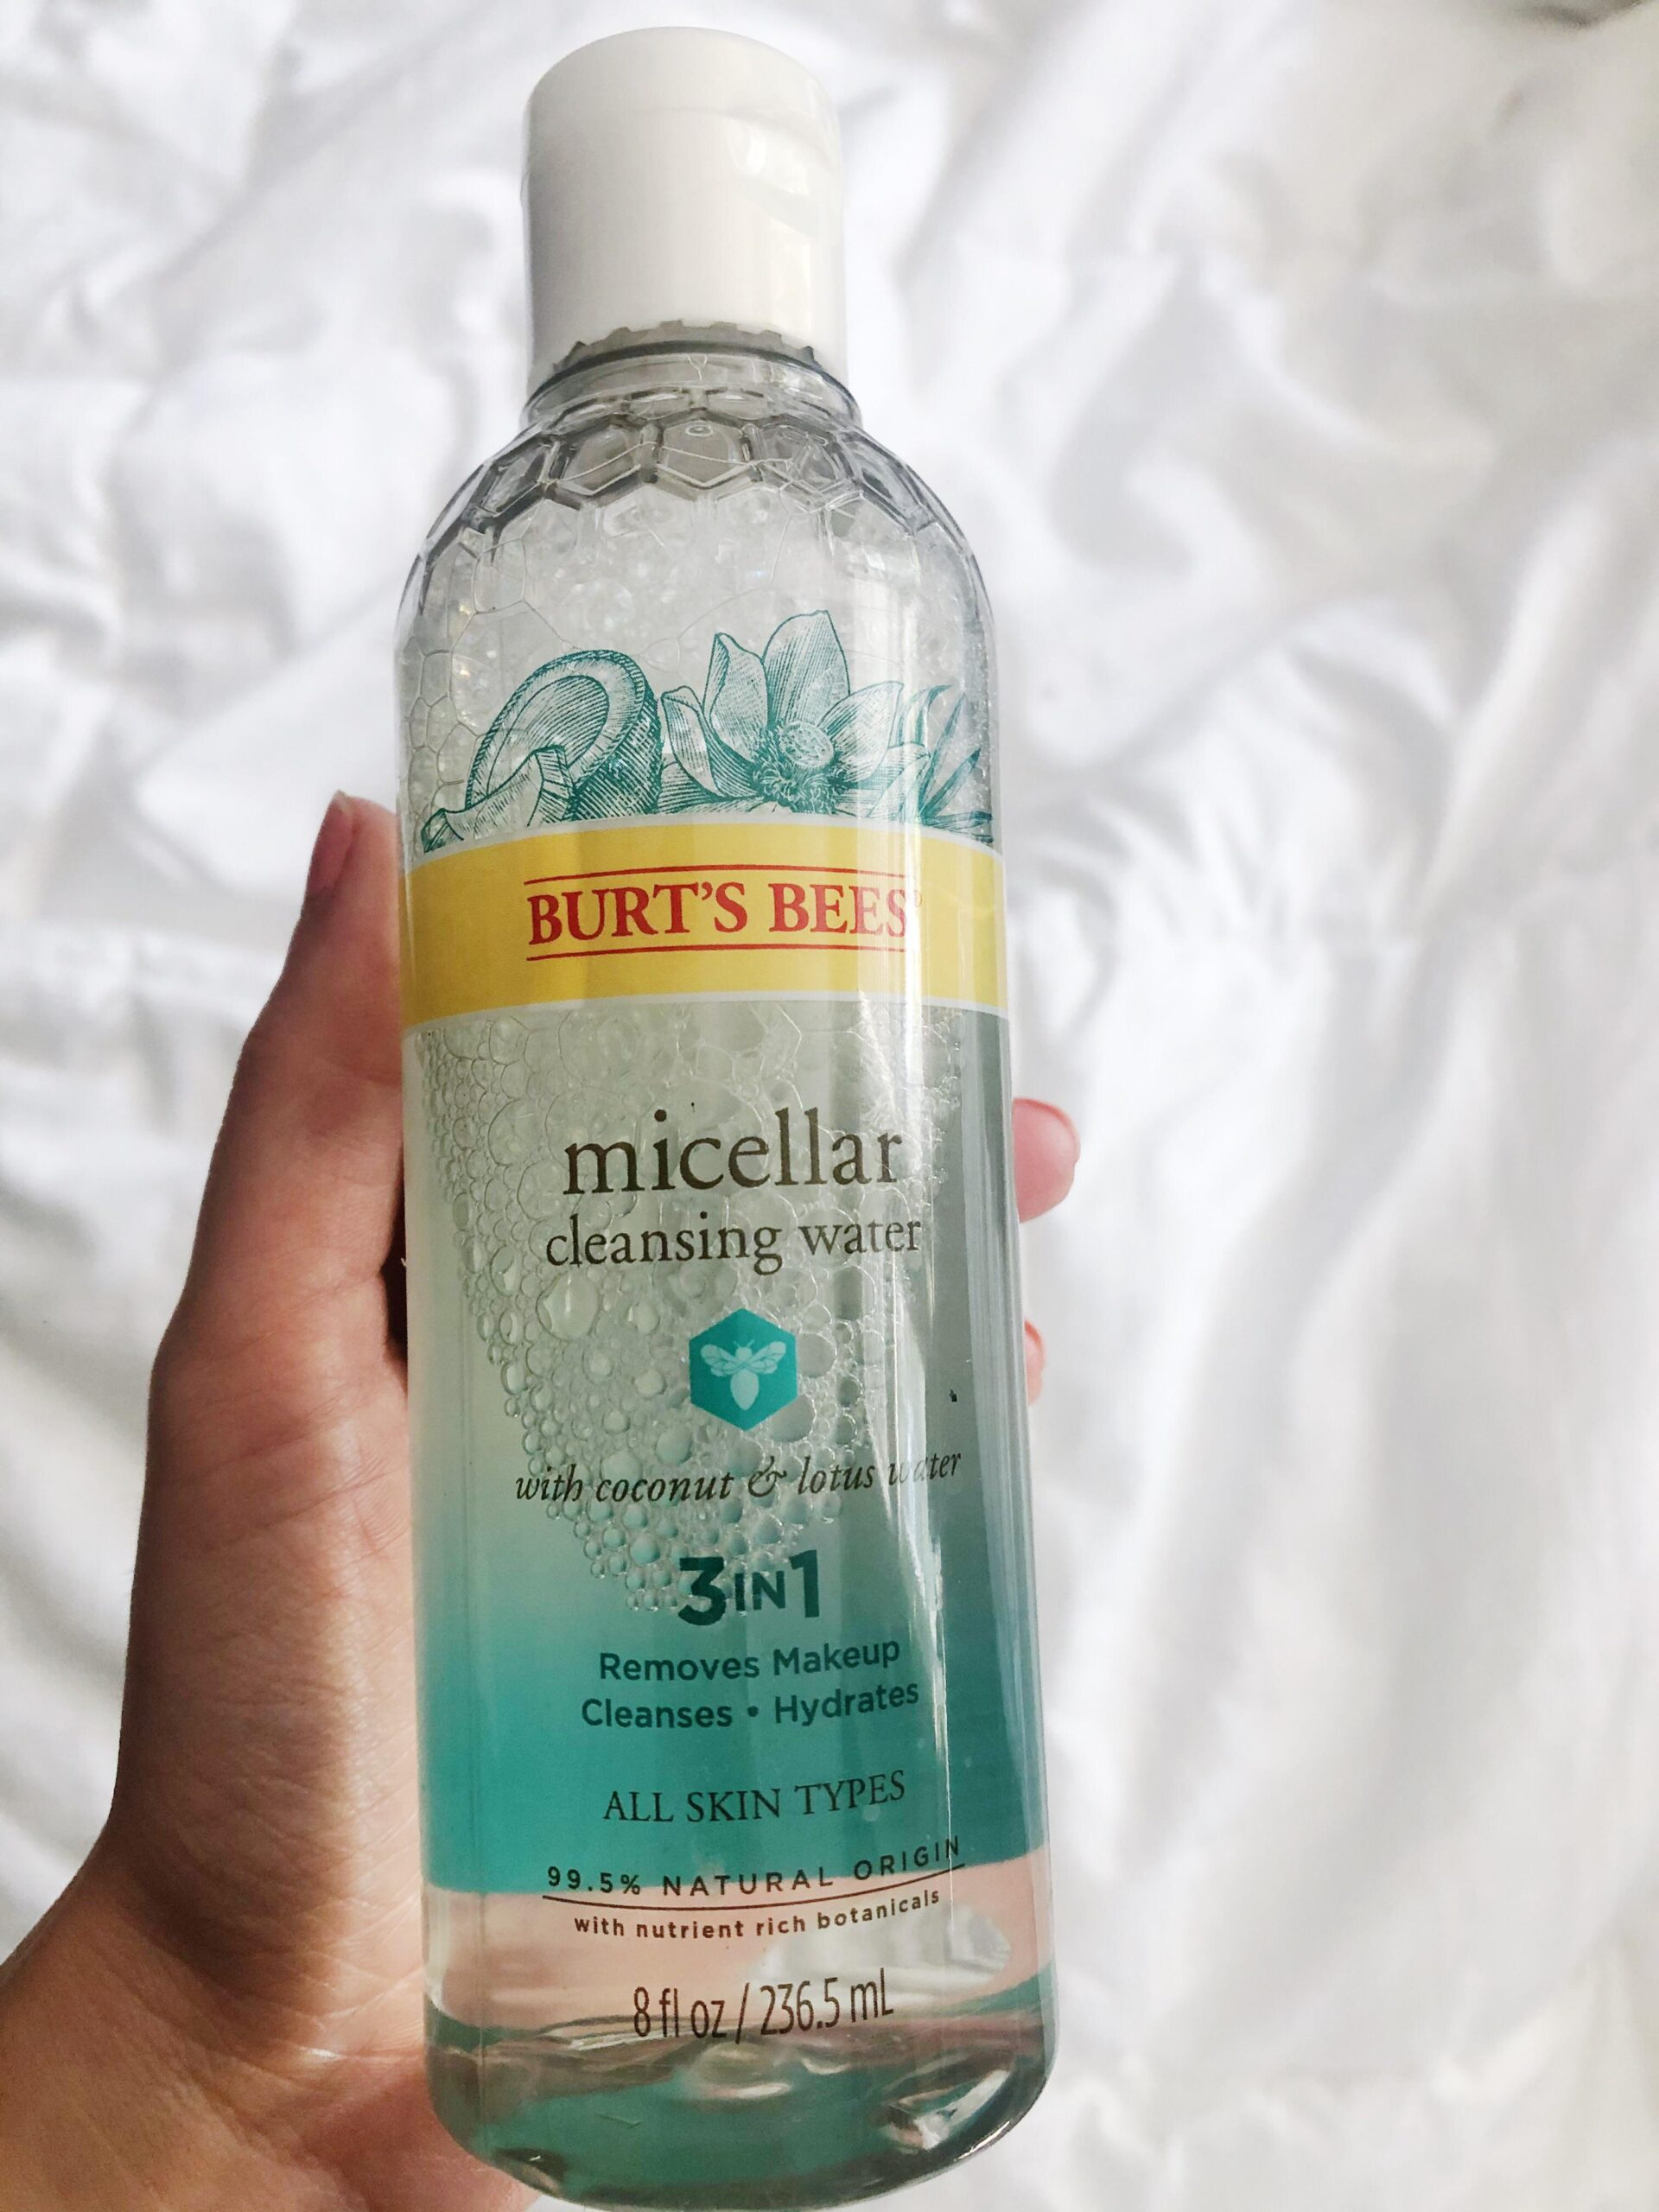 [Product question] I've switched over to using Micellar water occasionally and was wondering if you have any opinions on Burts Bees. It seems a little irritating to the skin but Im wondering if that's just a ~me~ thing or if others have experimented with this and thought the same. Thanks!